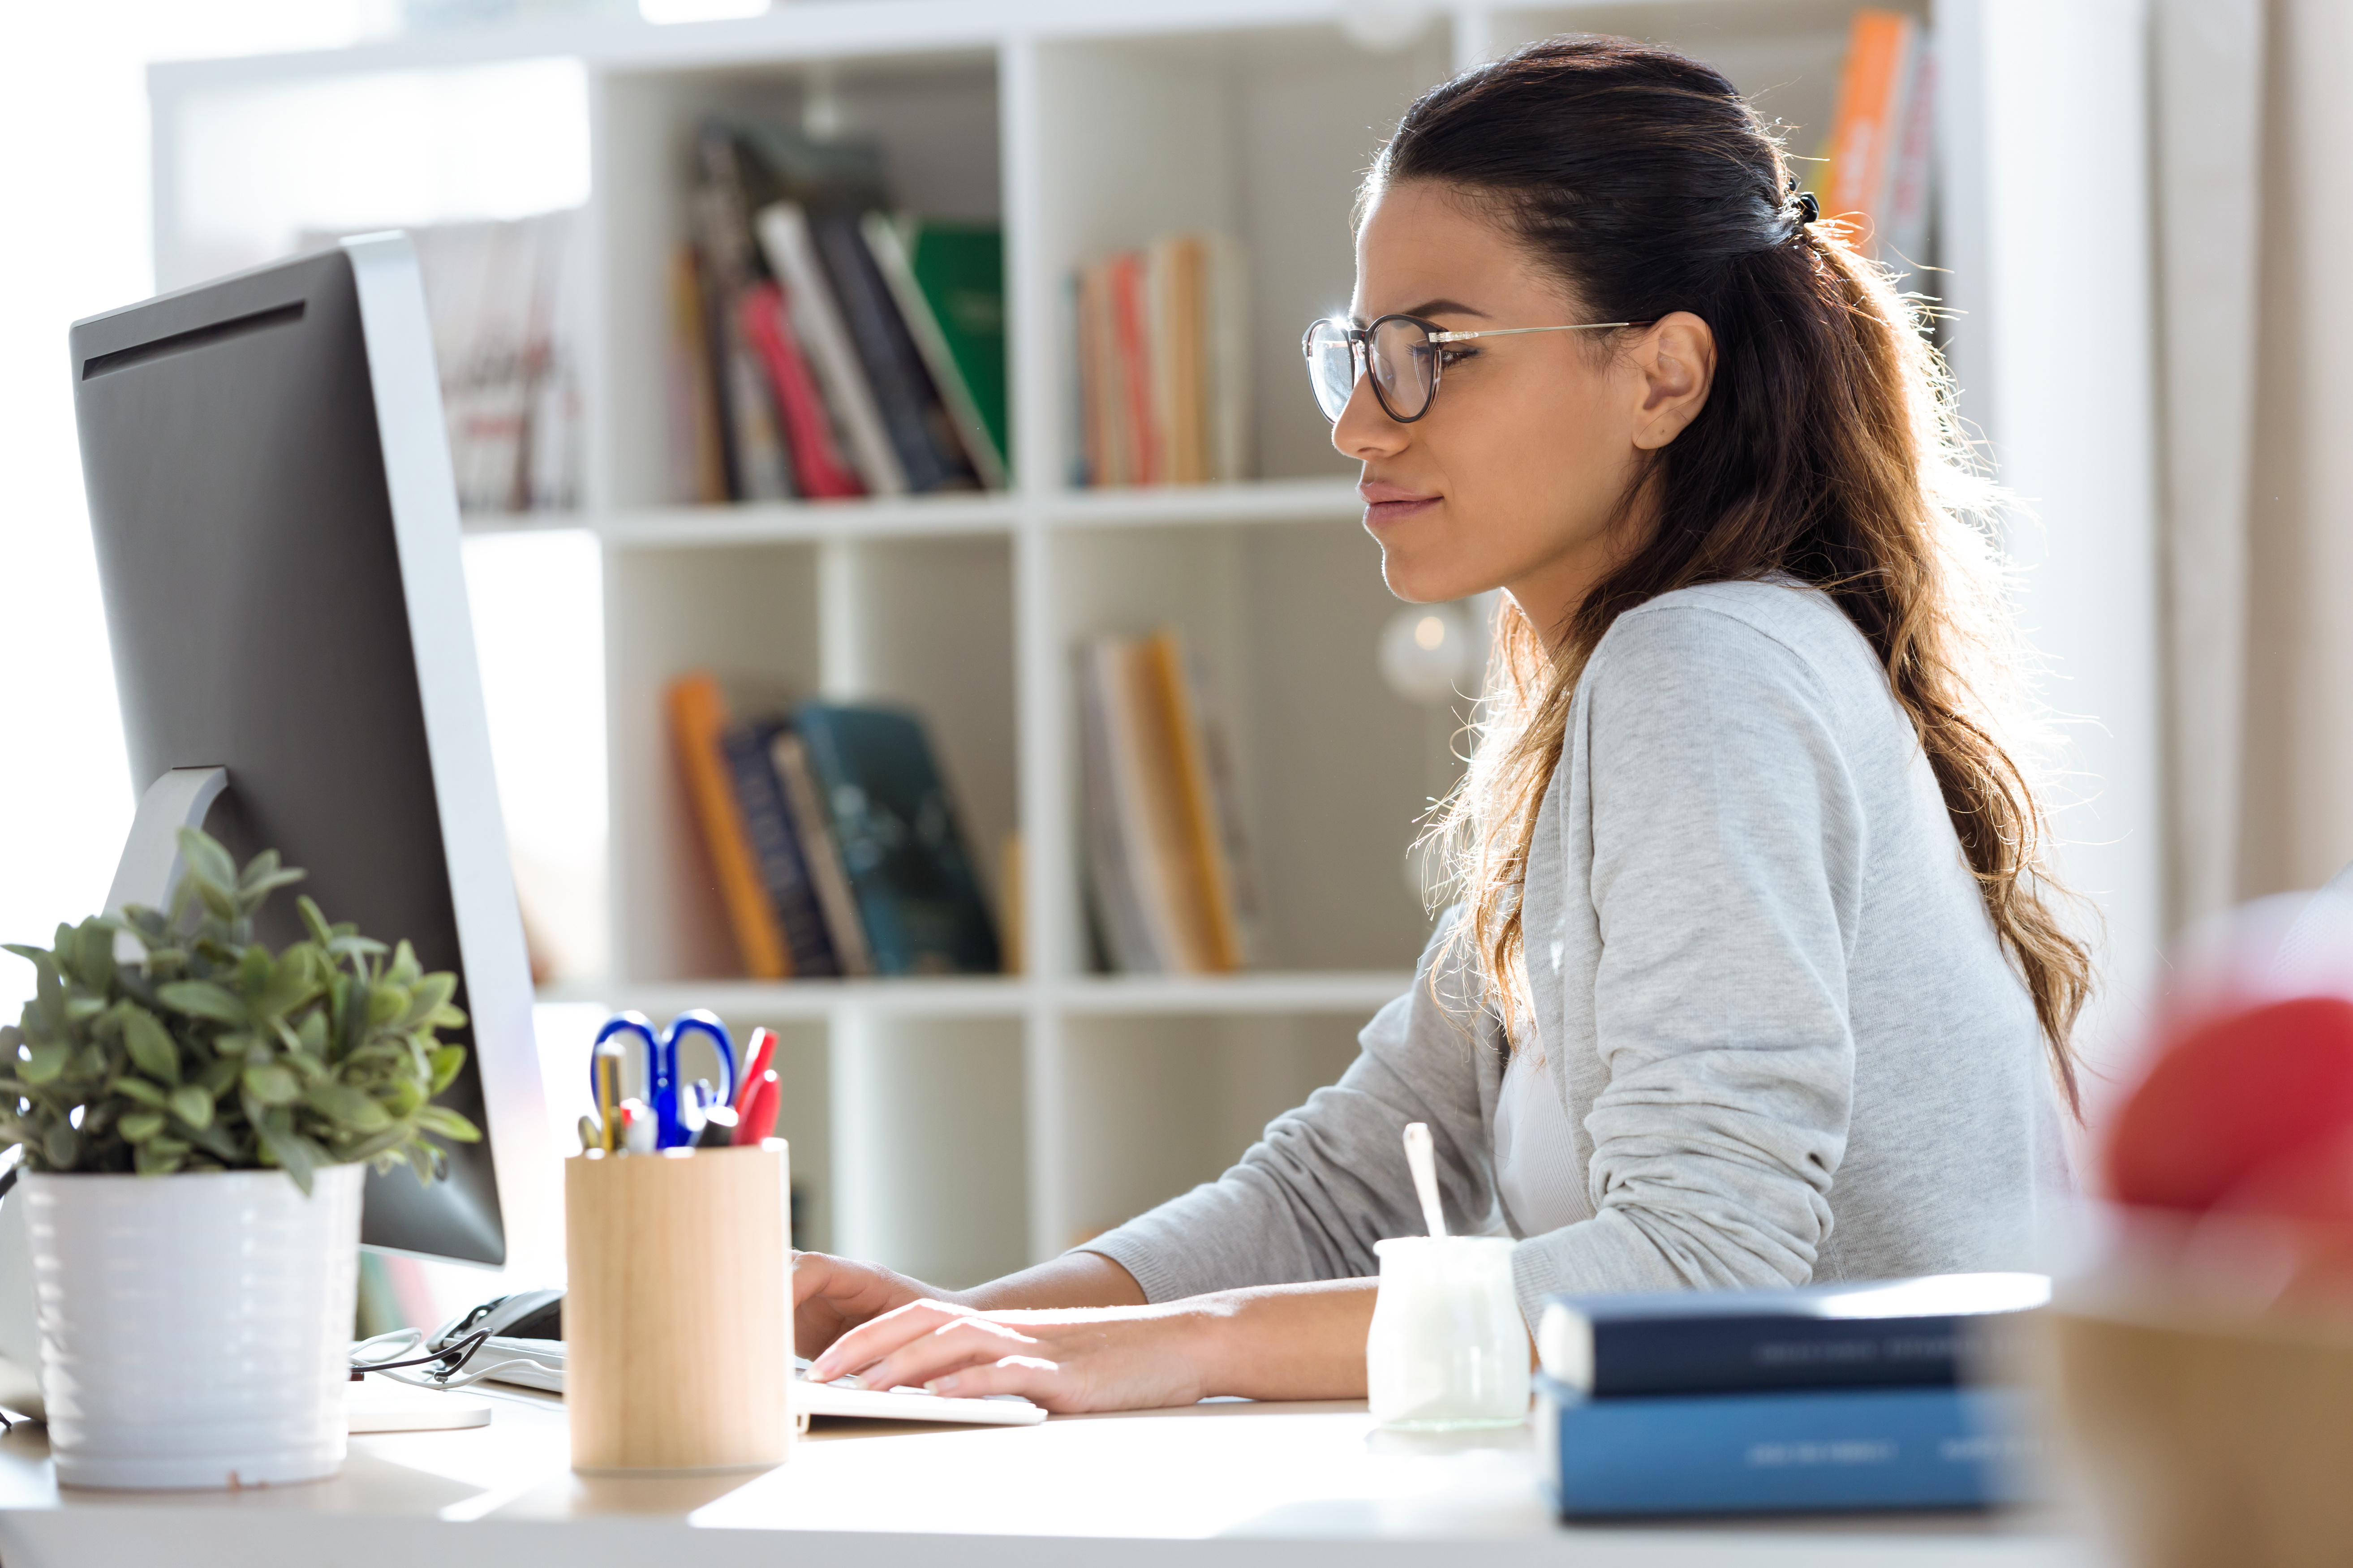 Employees Working from Home? Here is your Best Practice Guide